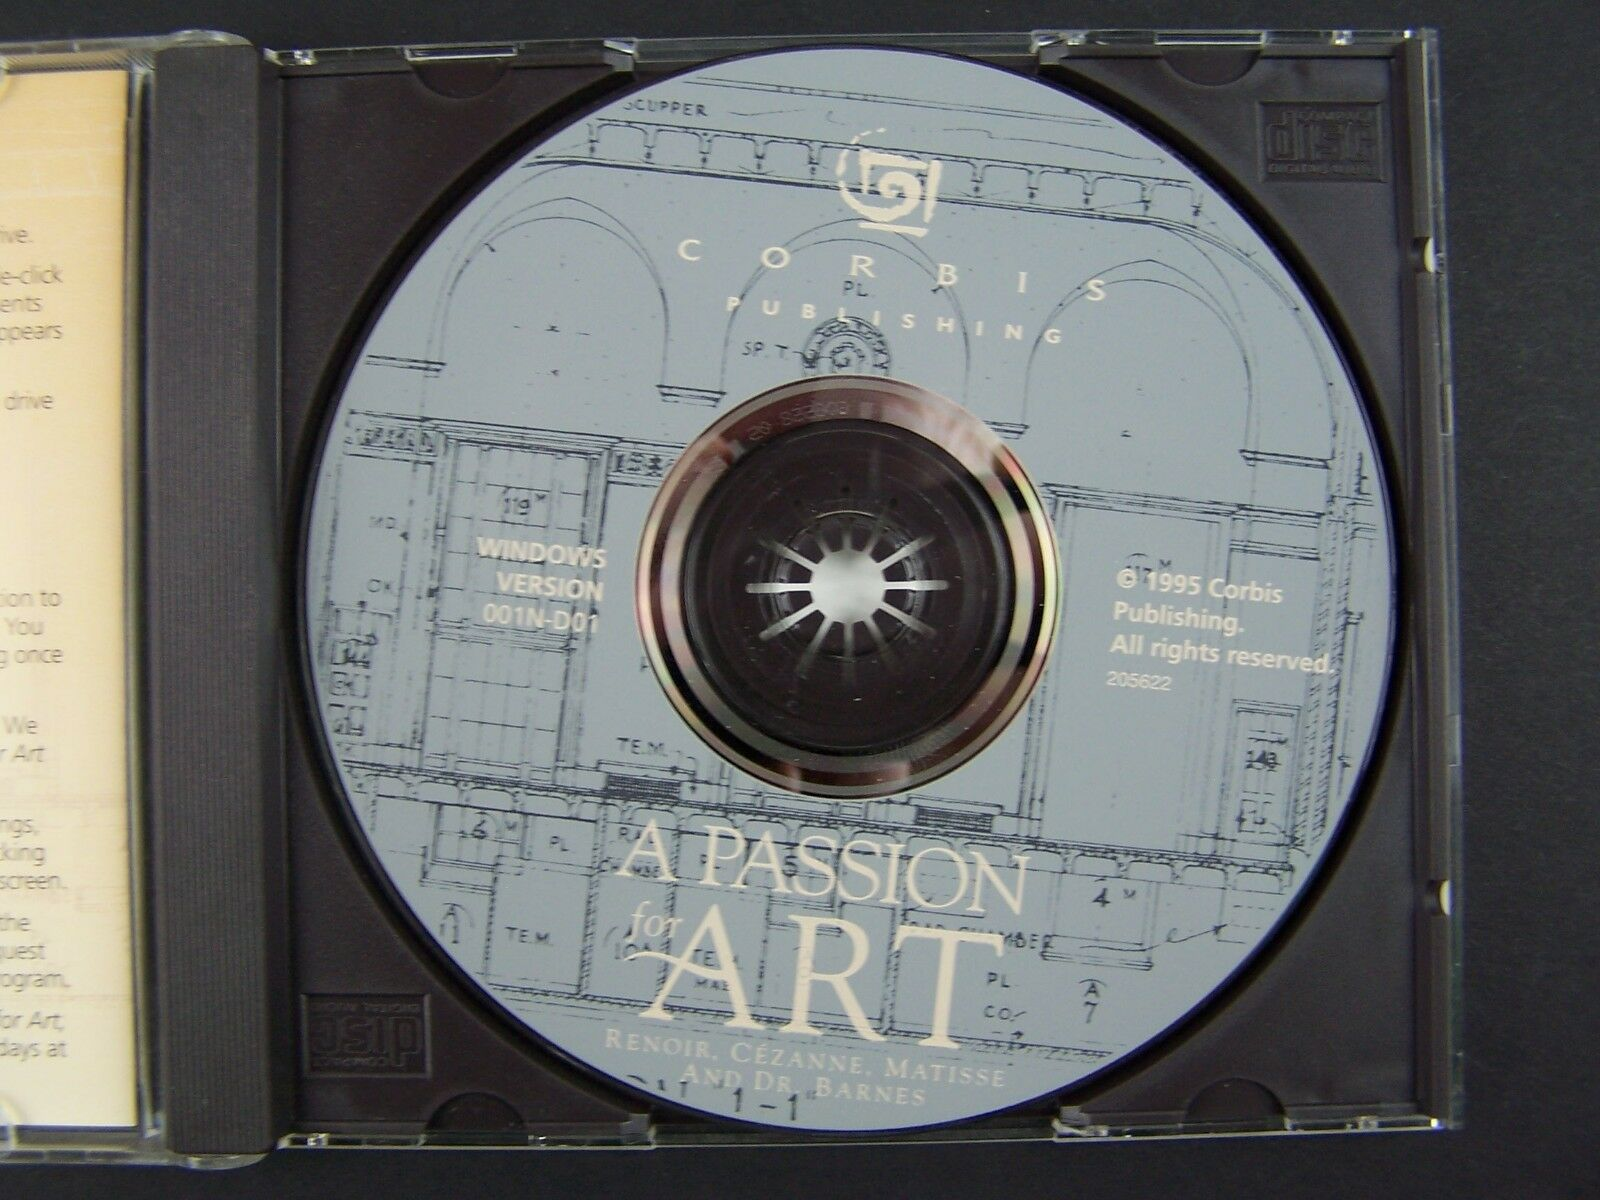 A Passion for Art Multimedia PC Game CD-ROM